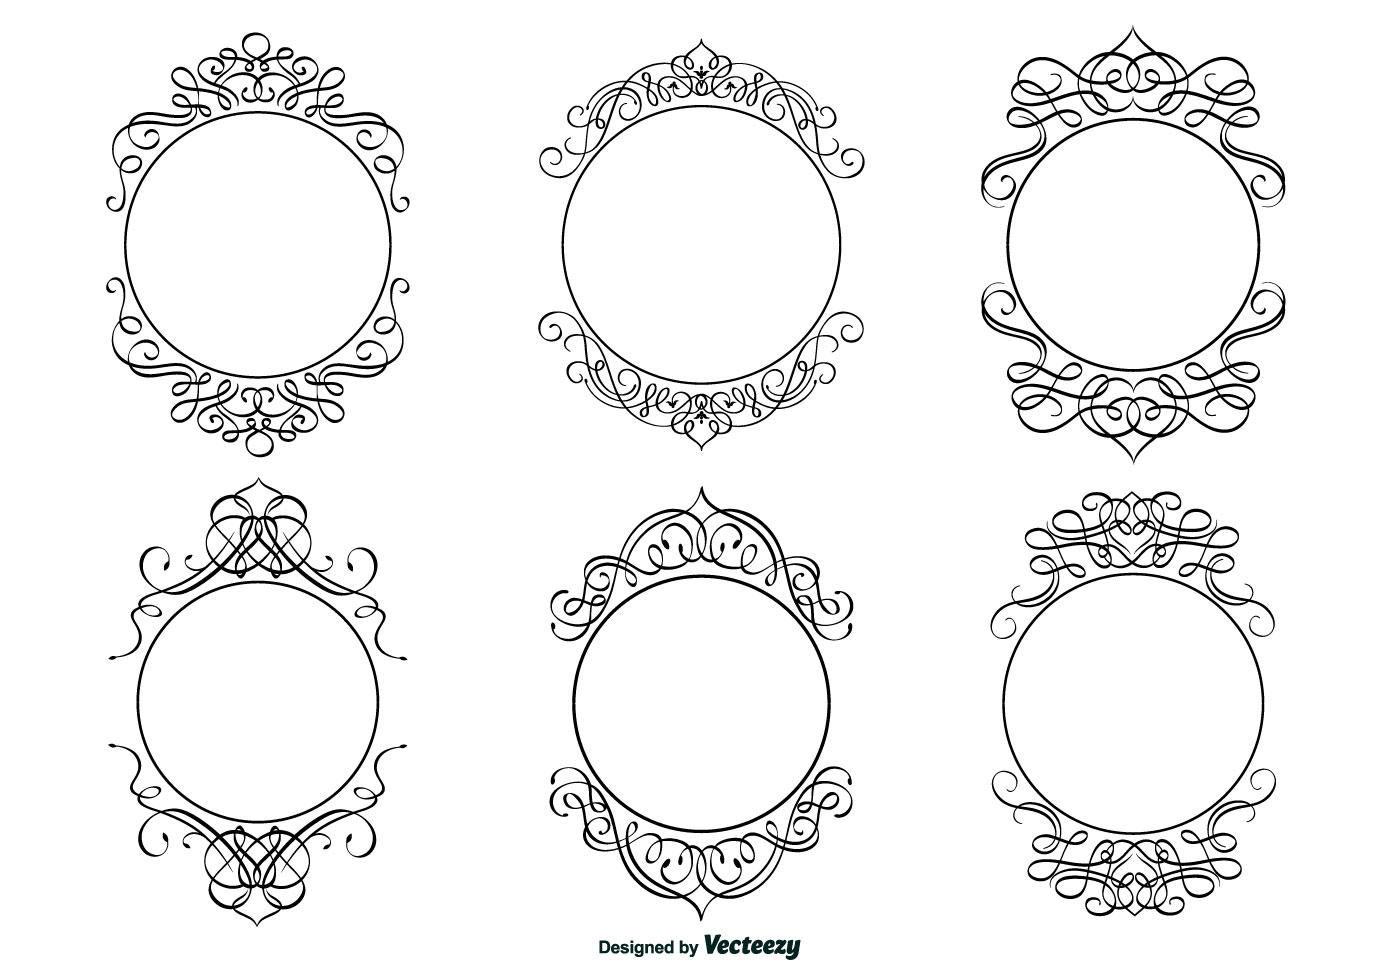 Decorative calligraphic frame set download free vector